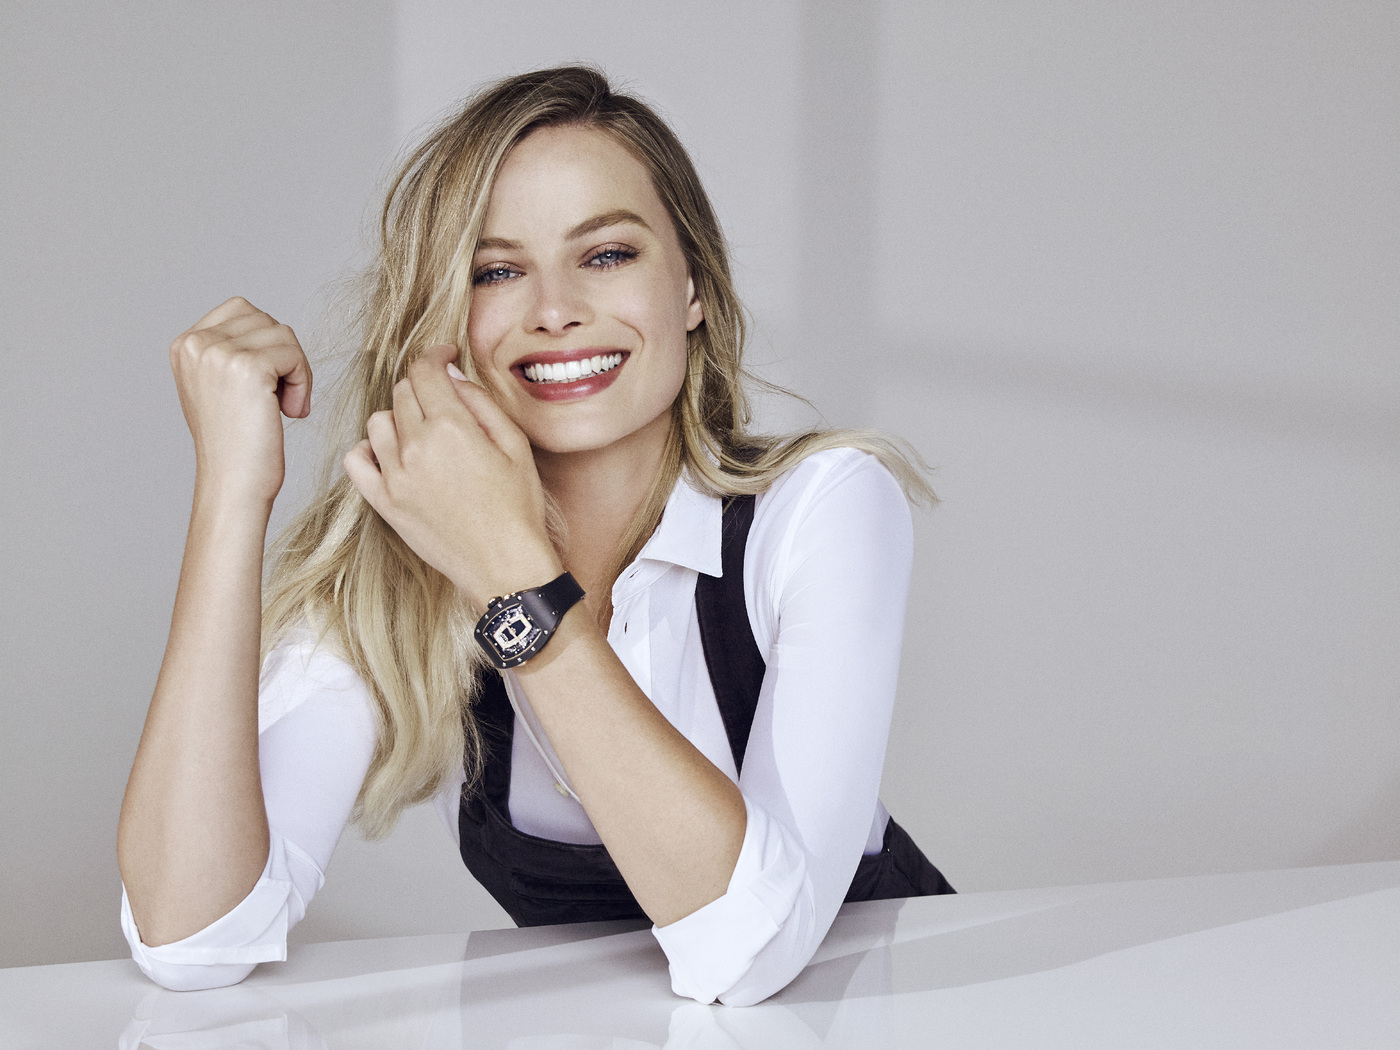 margot-robbie-richard-mille-campaign-2019-h2.jpg